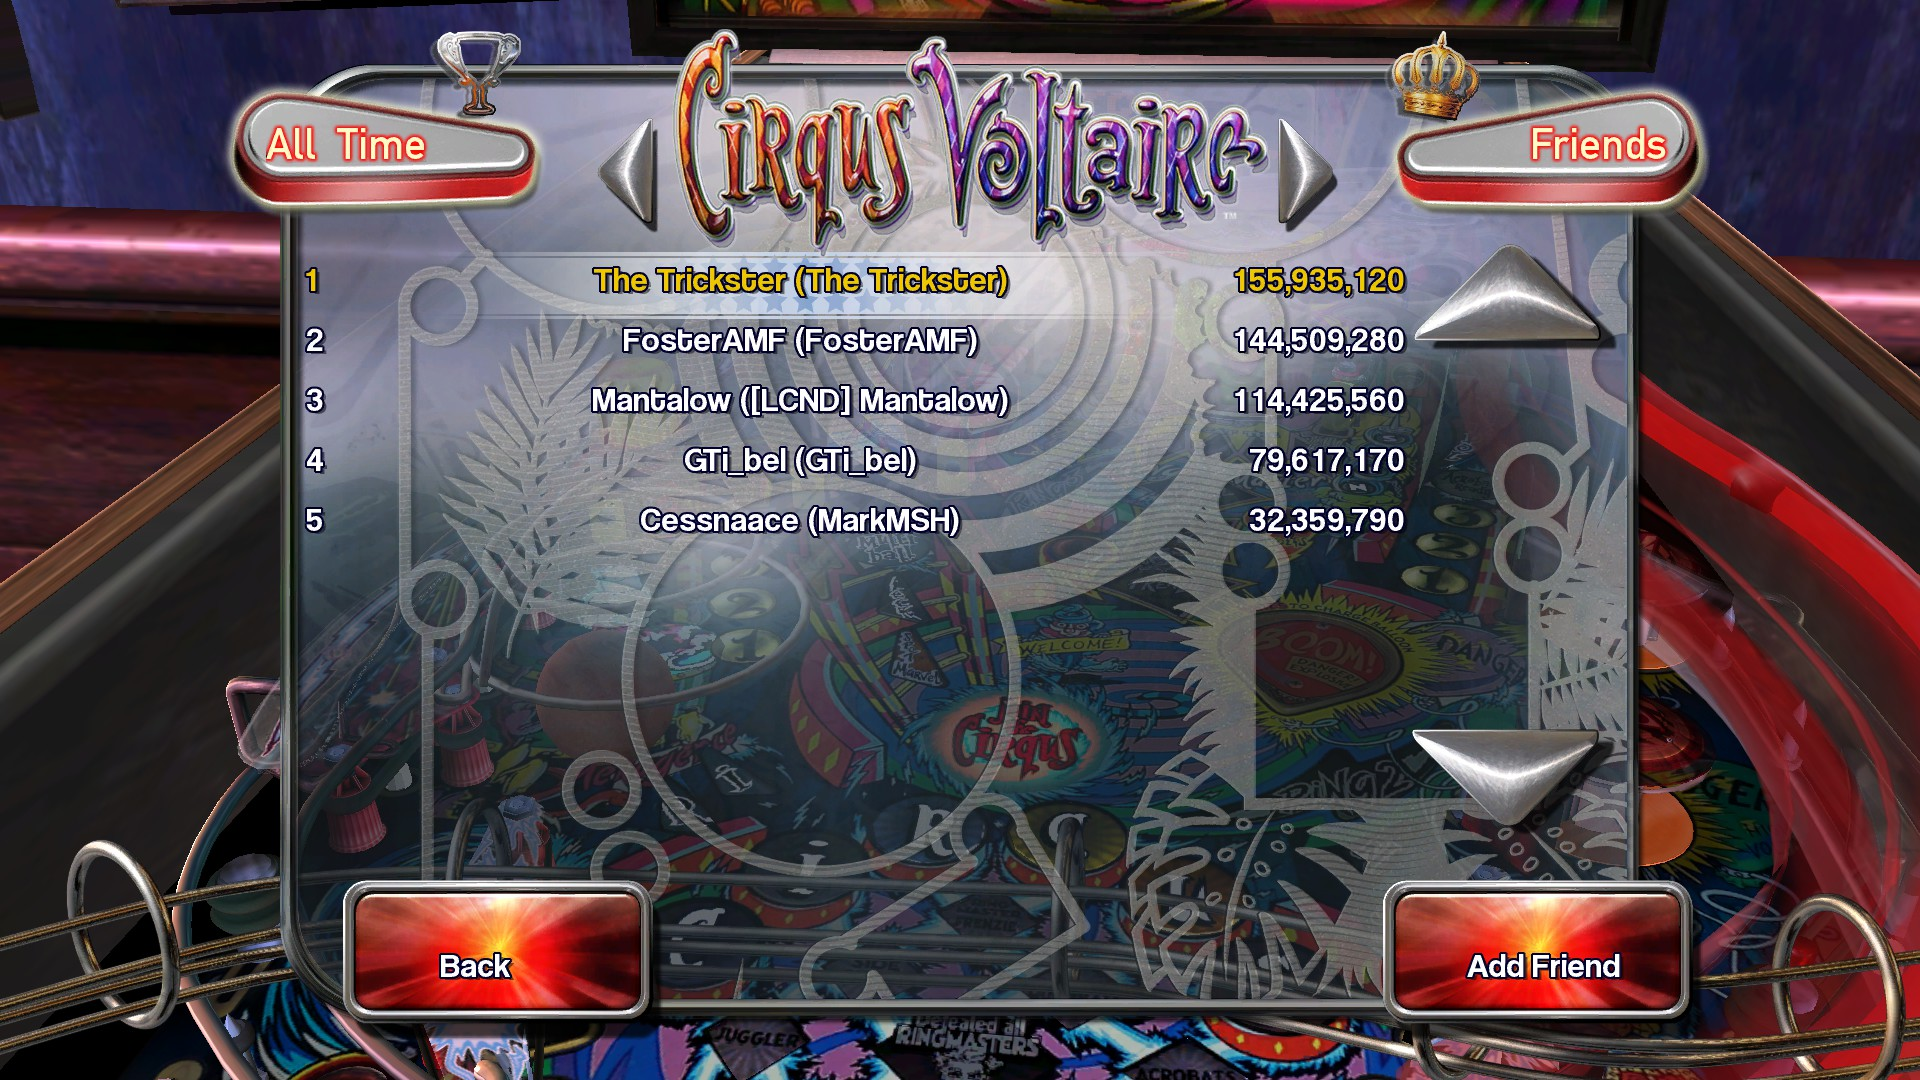 TheTrickster: Pinball Arcade: Circus Voltaire (PC) 155,935,120 points on 2015-11-27 20:35:36